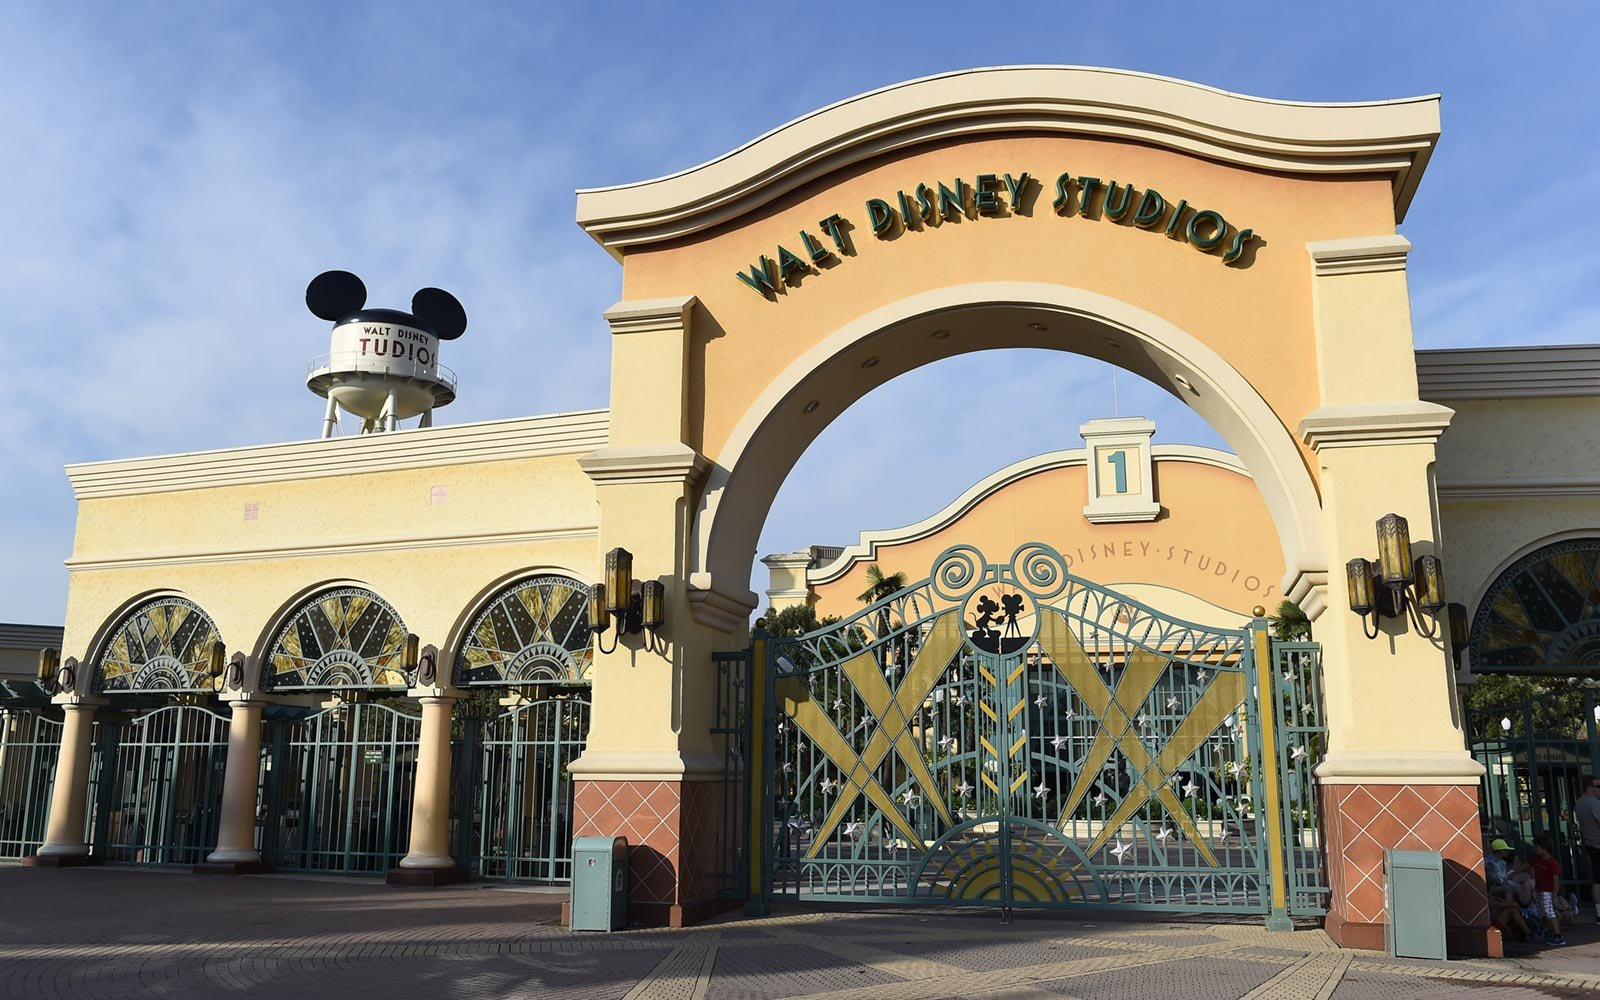 Walt Disney Studios, Disneyland Paris, France